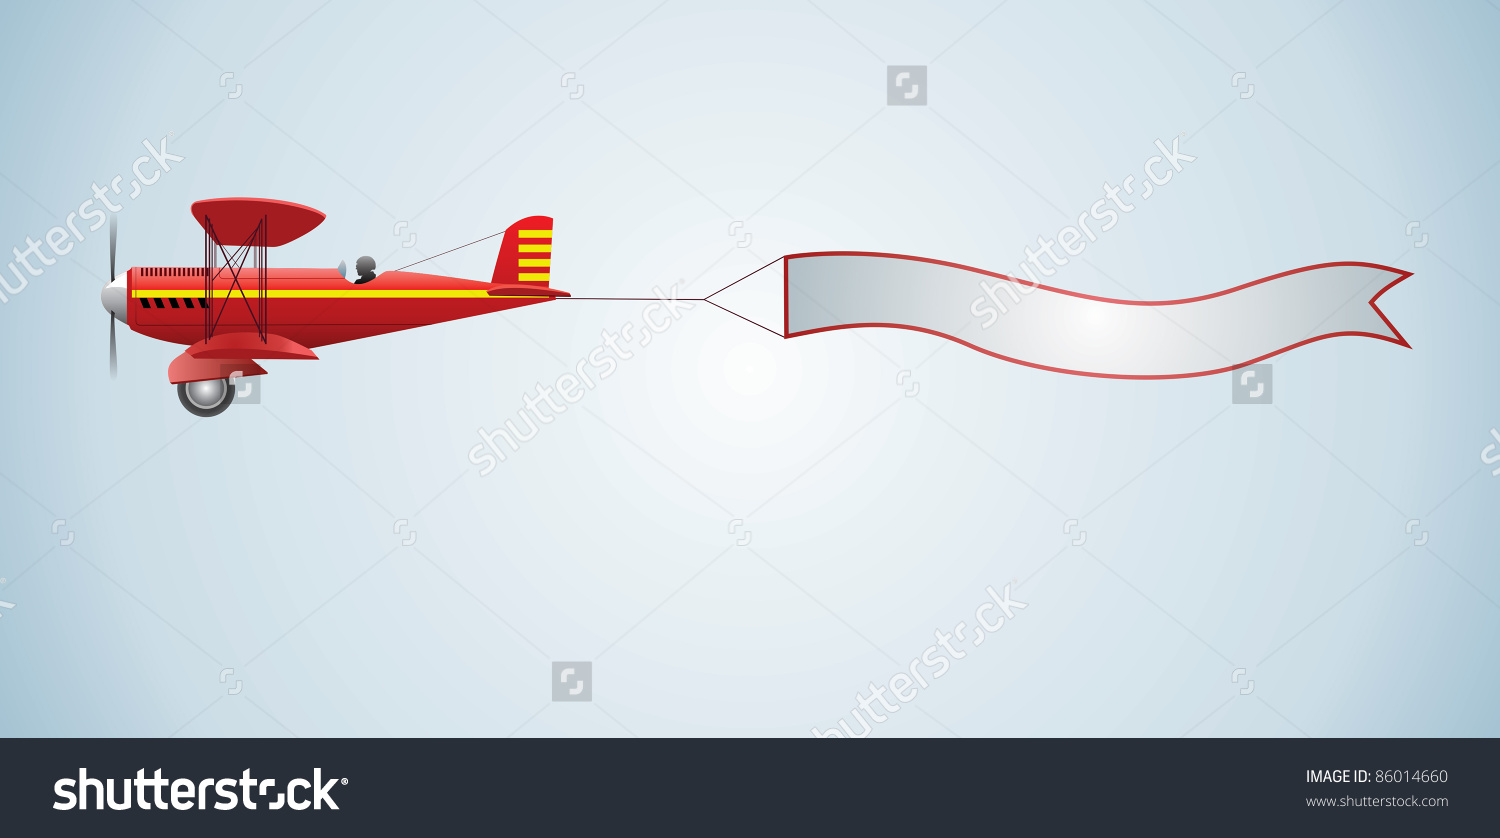 Plane pulling sign clipart black and white download Airplane towing a banner clipart for logo - ClipartFest black and white download